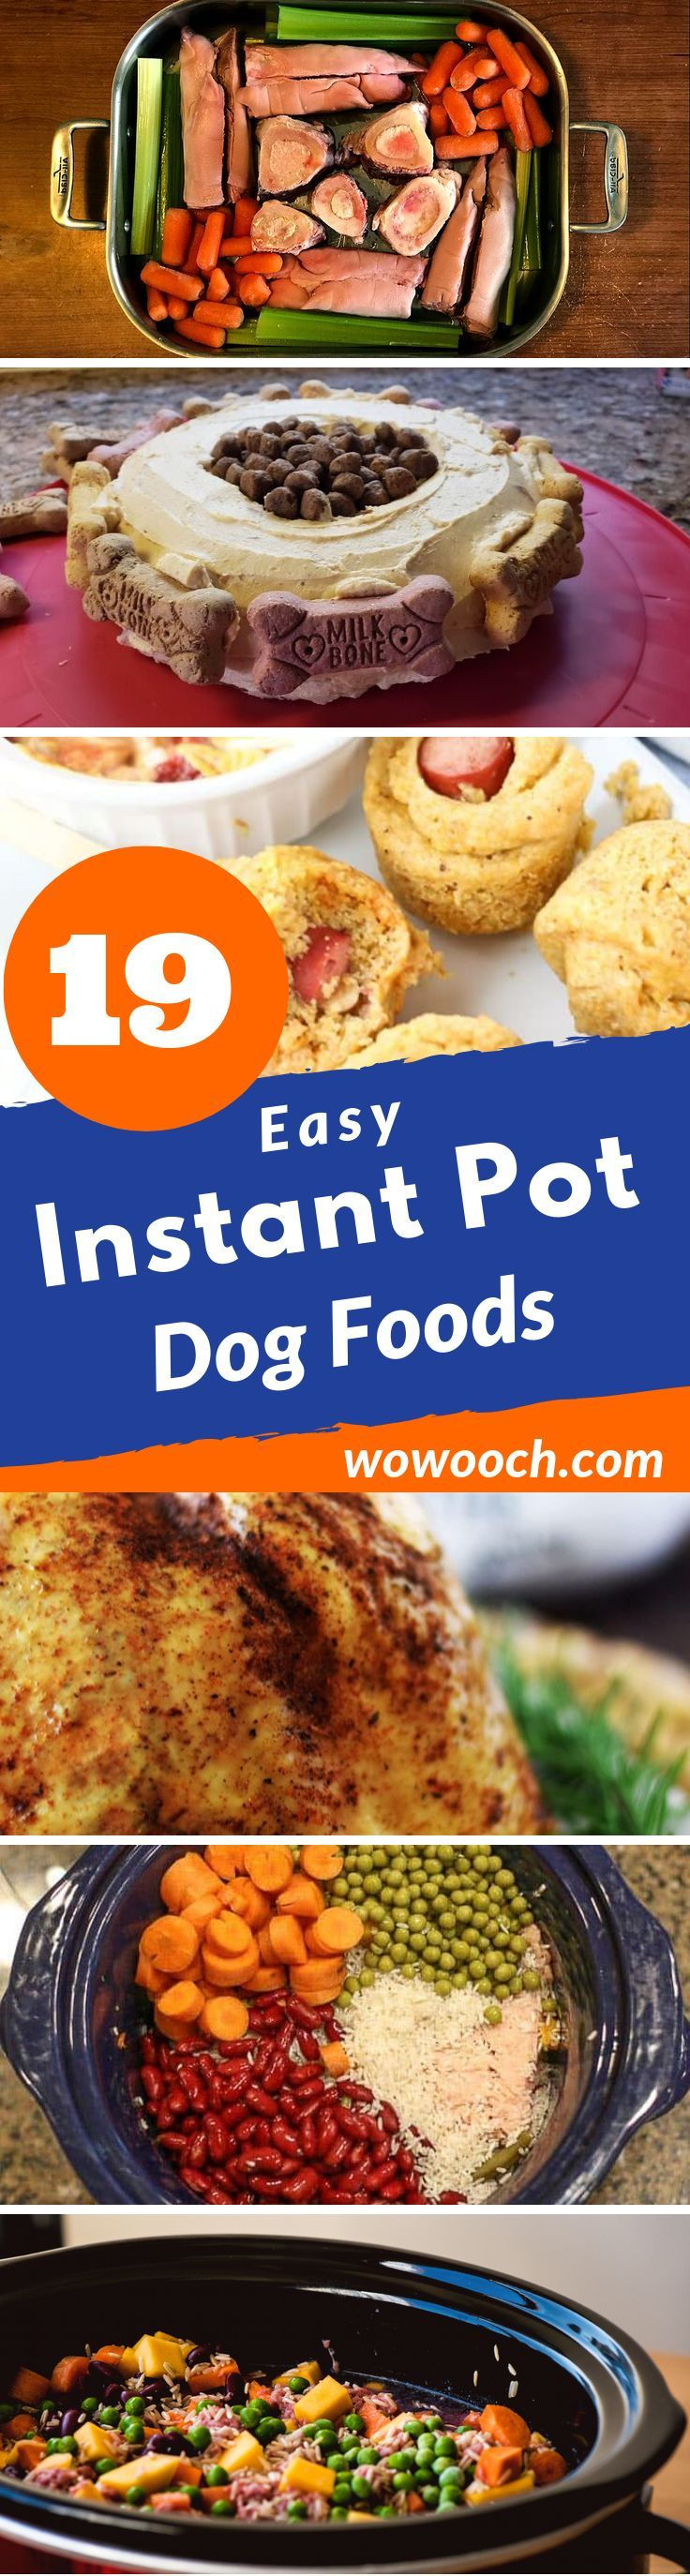 instant pot dog food with chicken